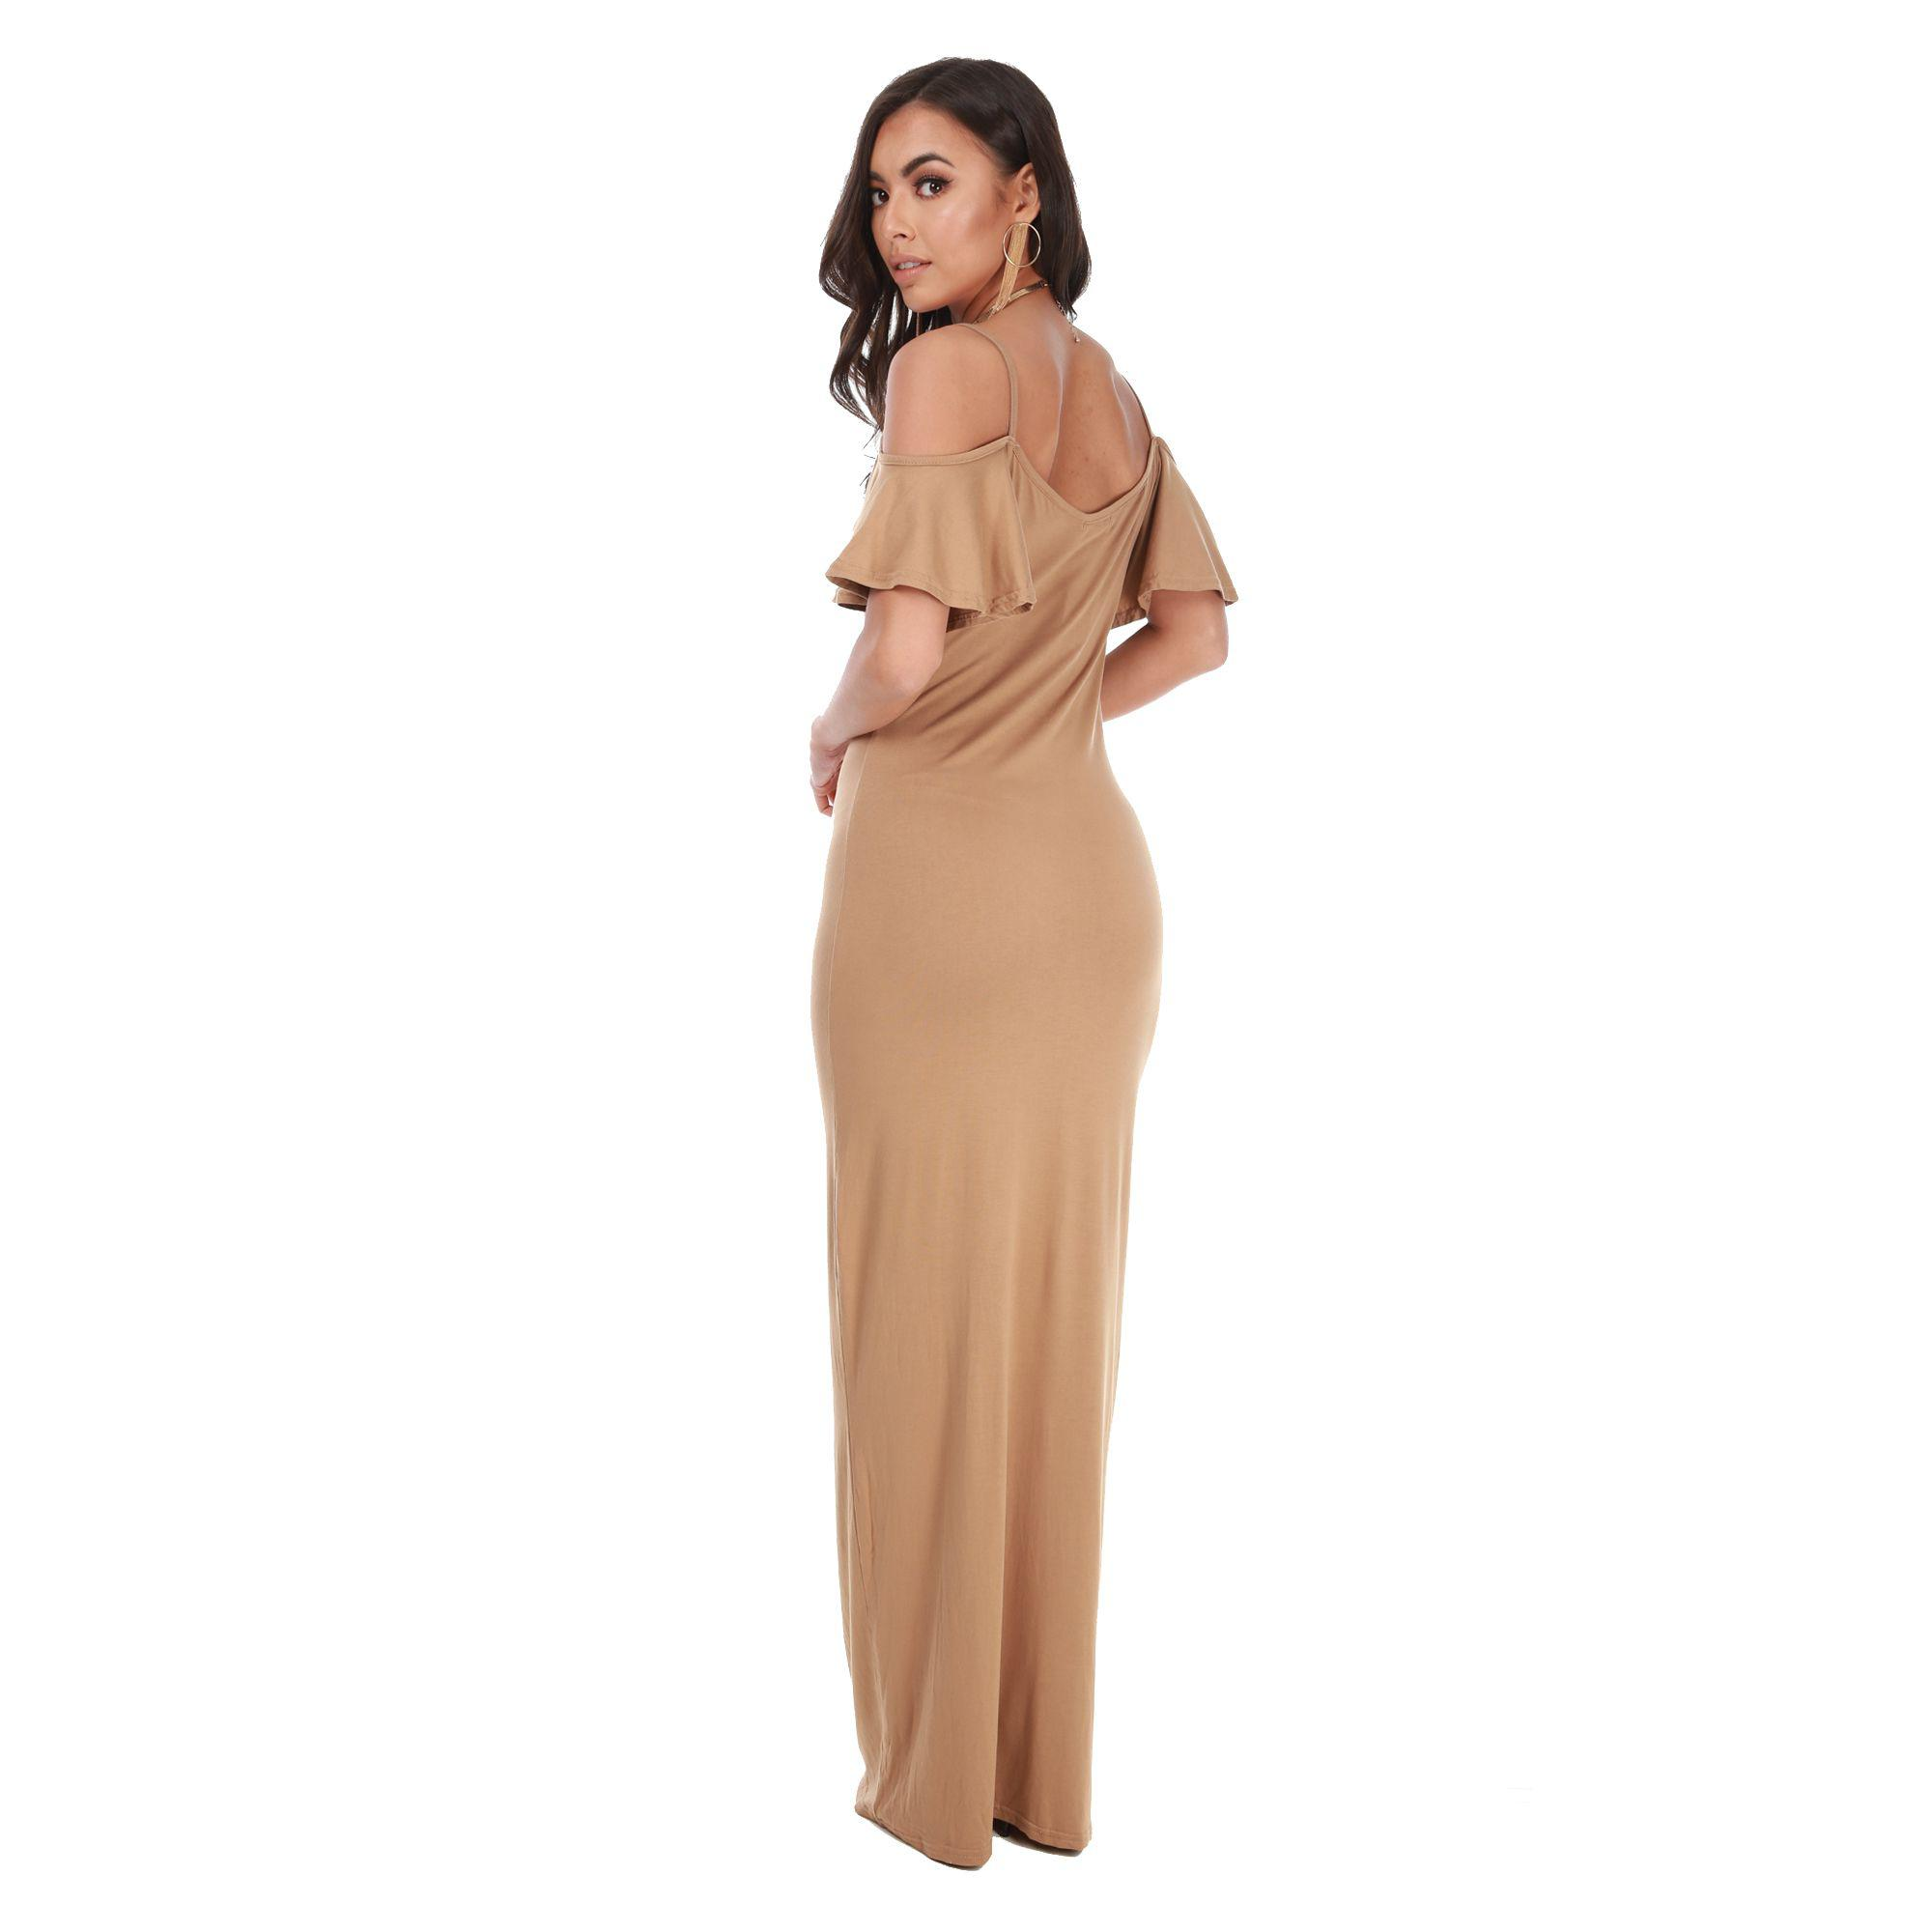 cafbb8ebf695 Be Jealous Camel Off Shoulder Maxi Dress in Natural - Lyst